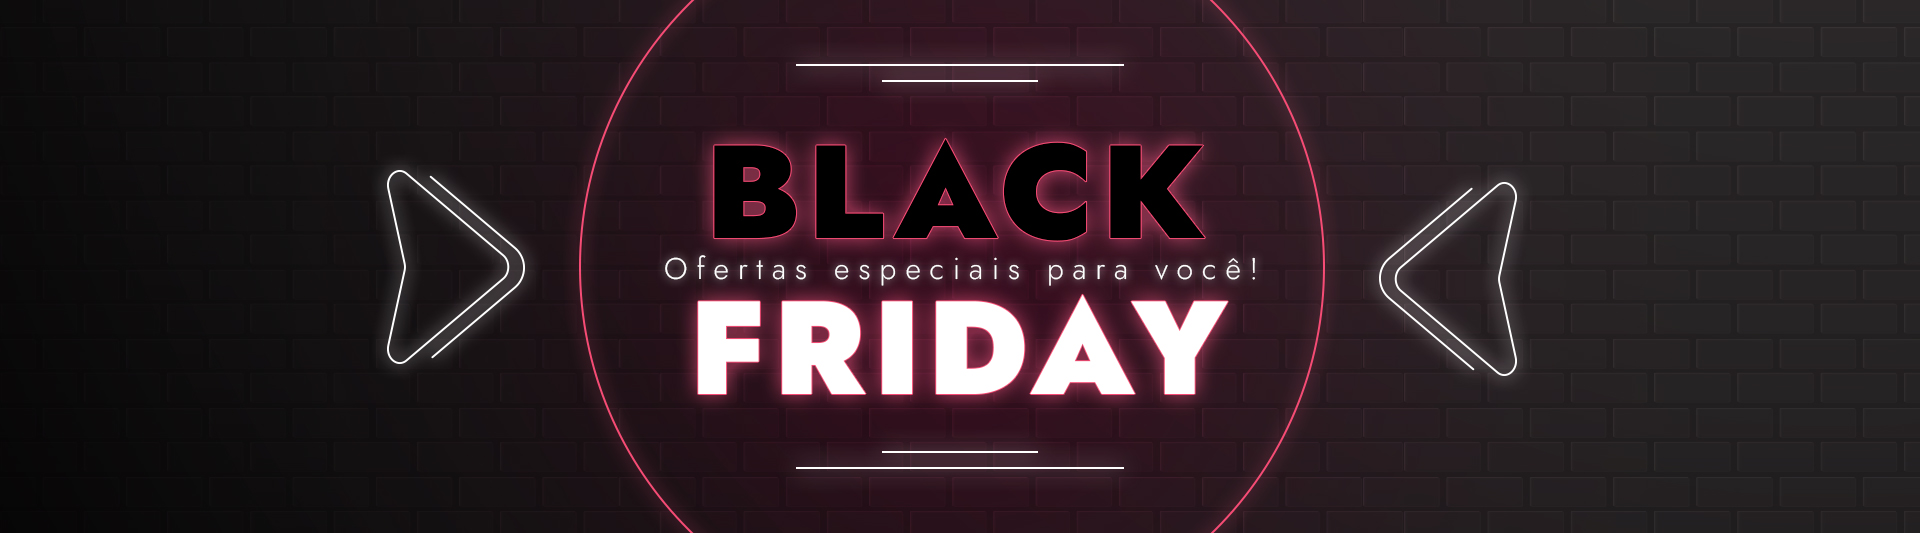 Black Friday Extrovertida